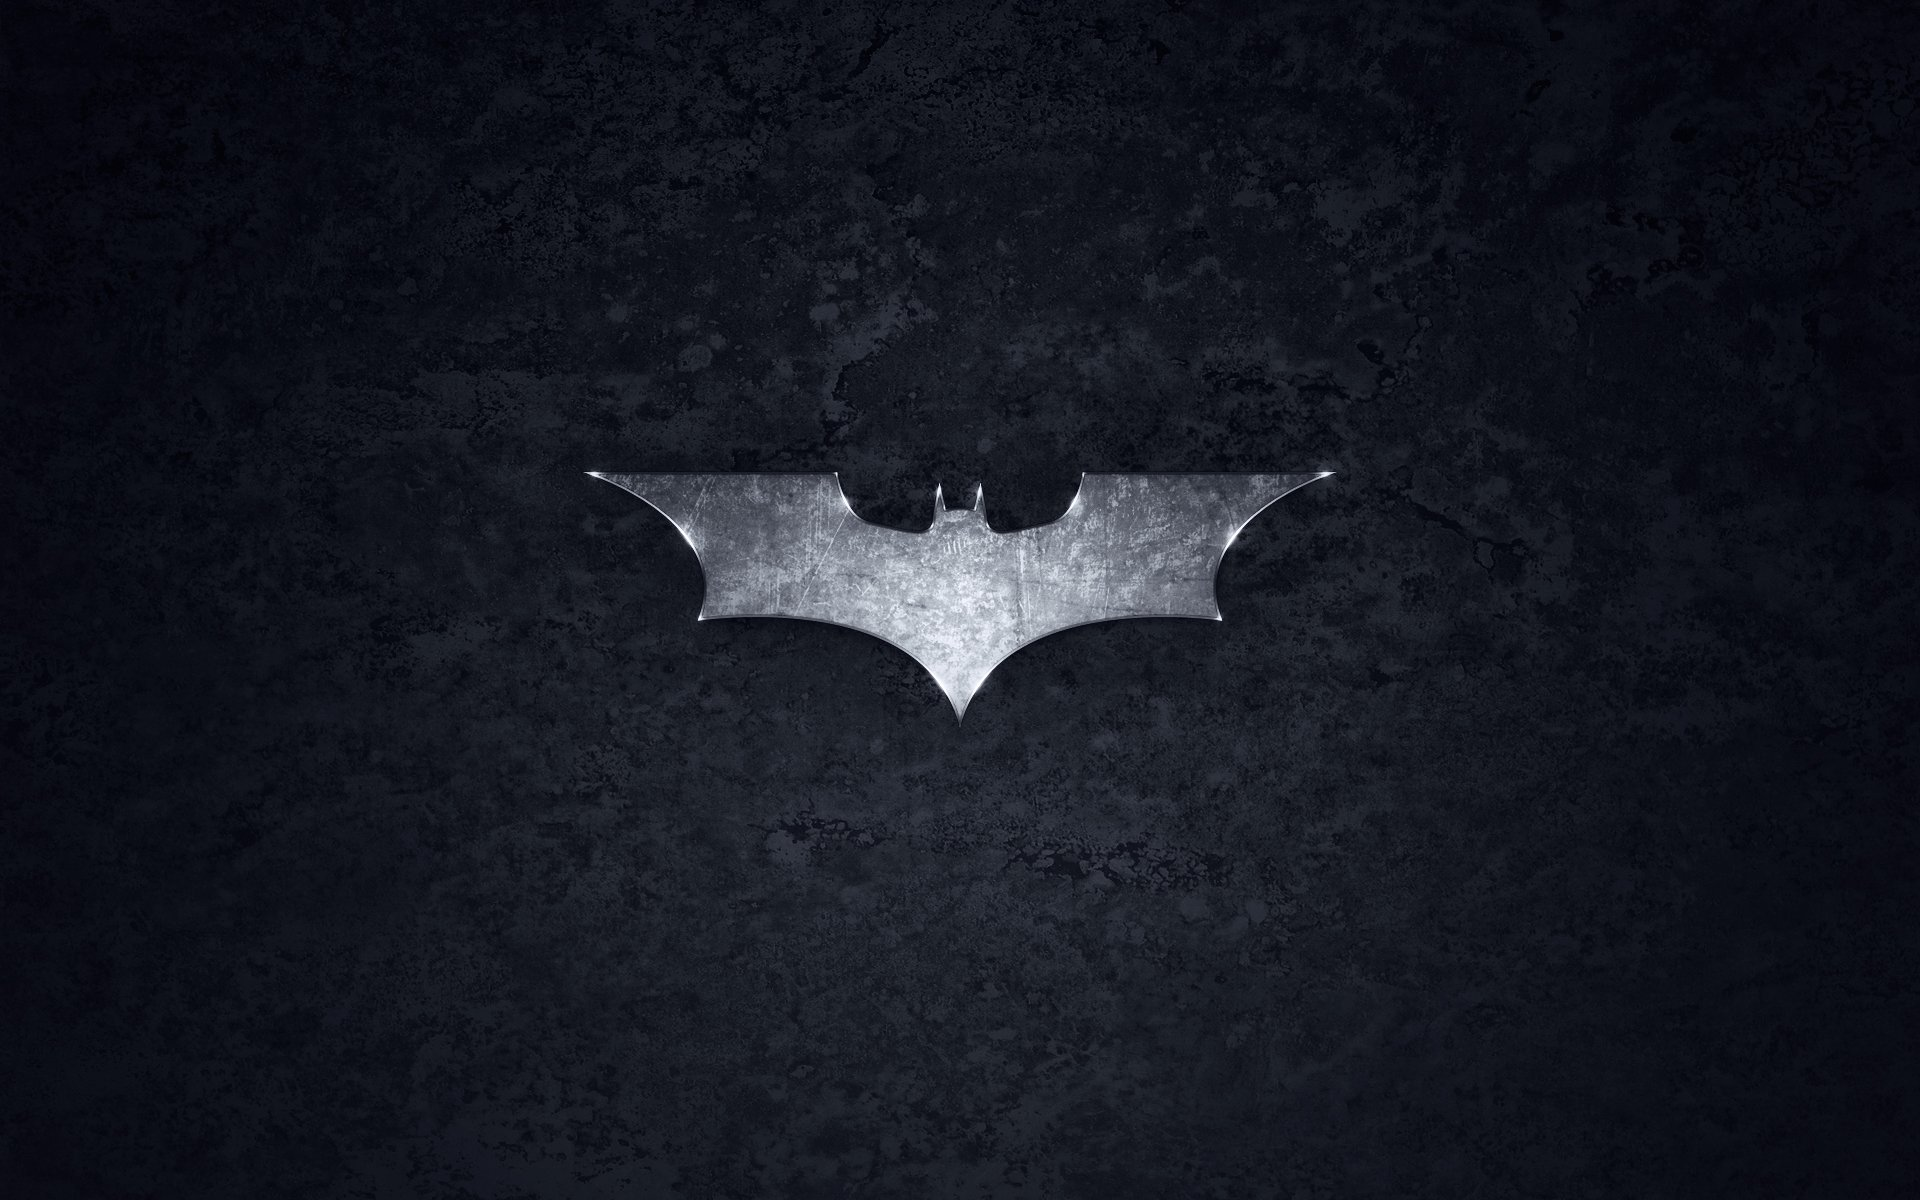 Dark Knight wallpaper 1952 1920x1200